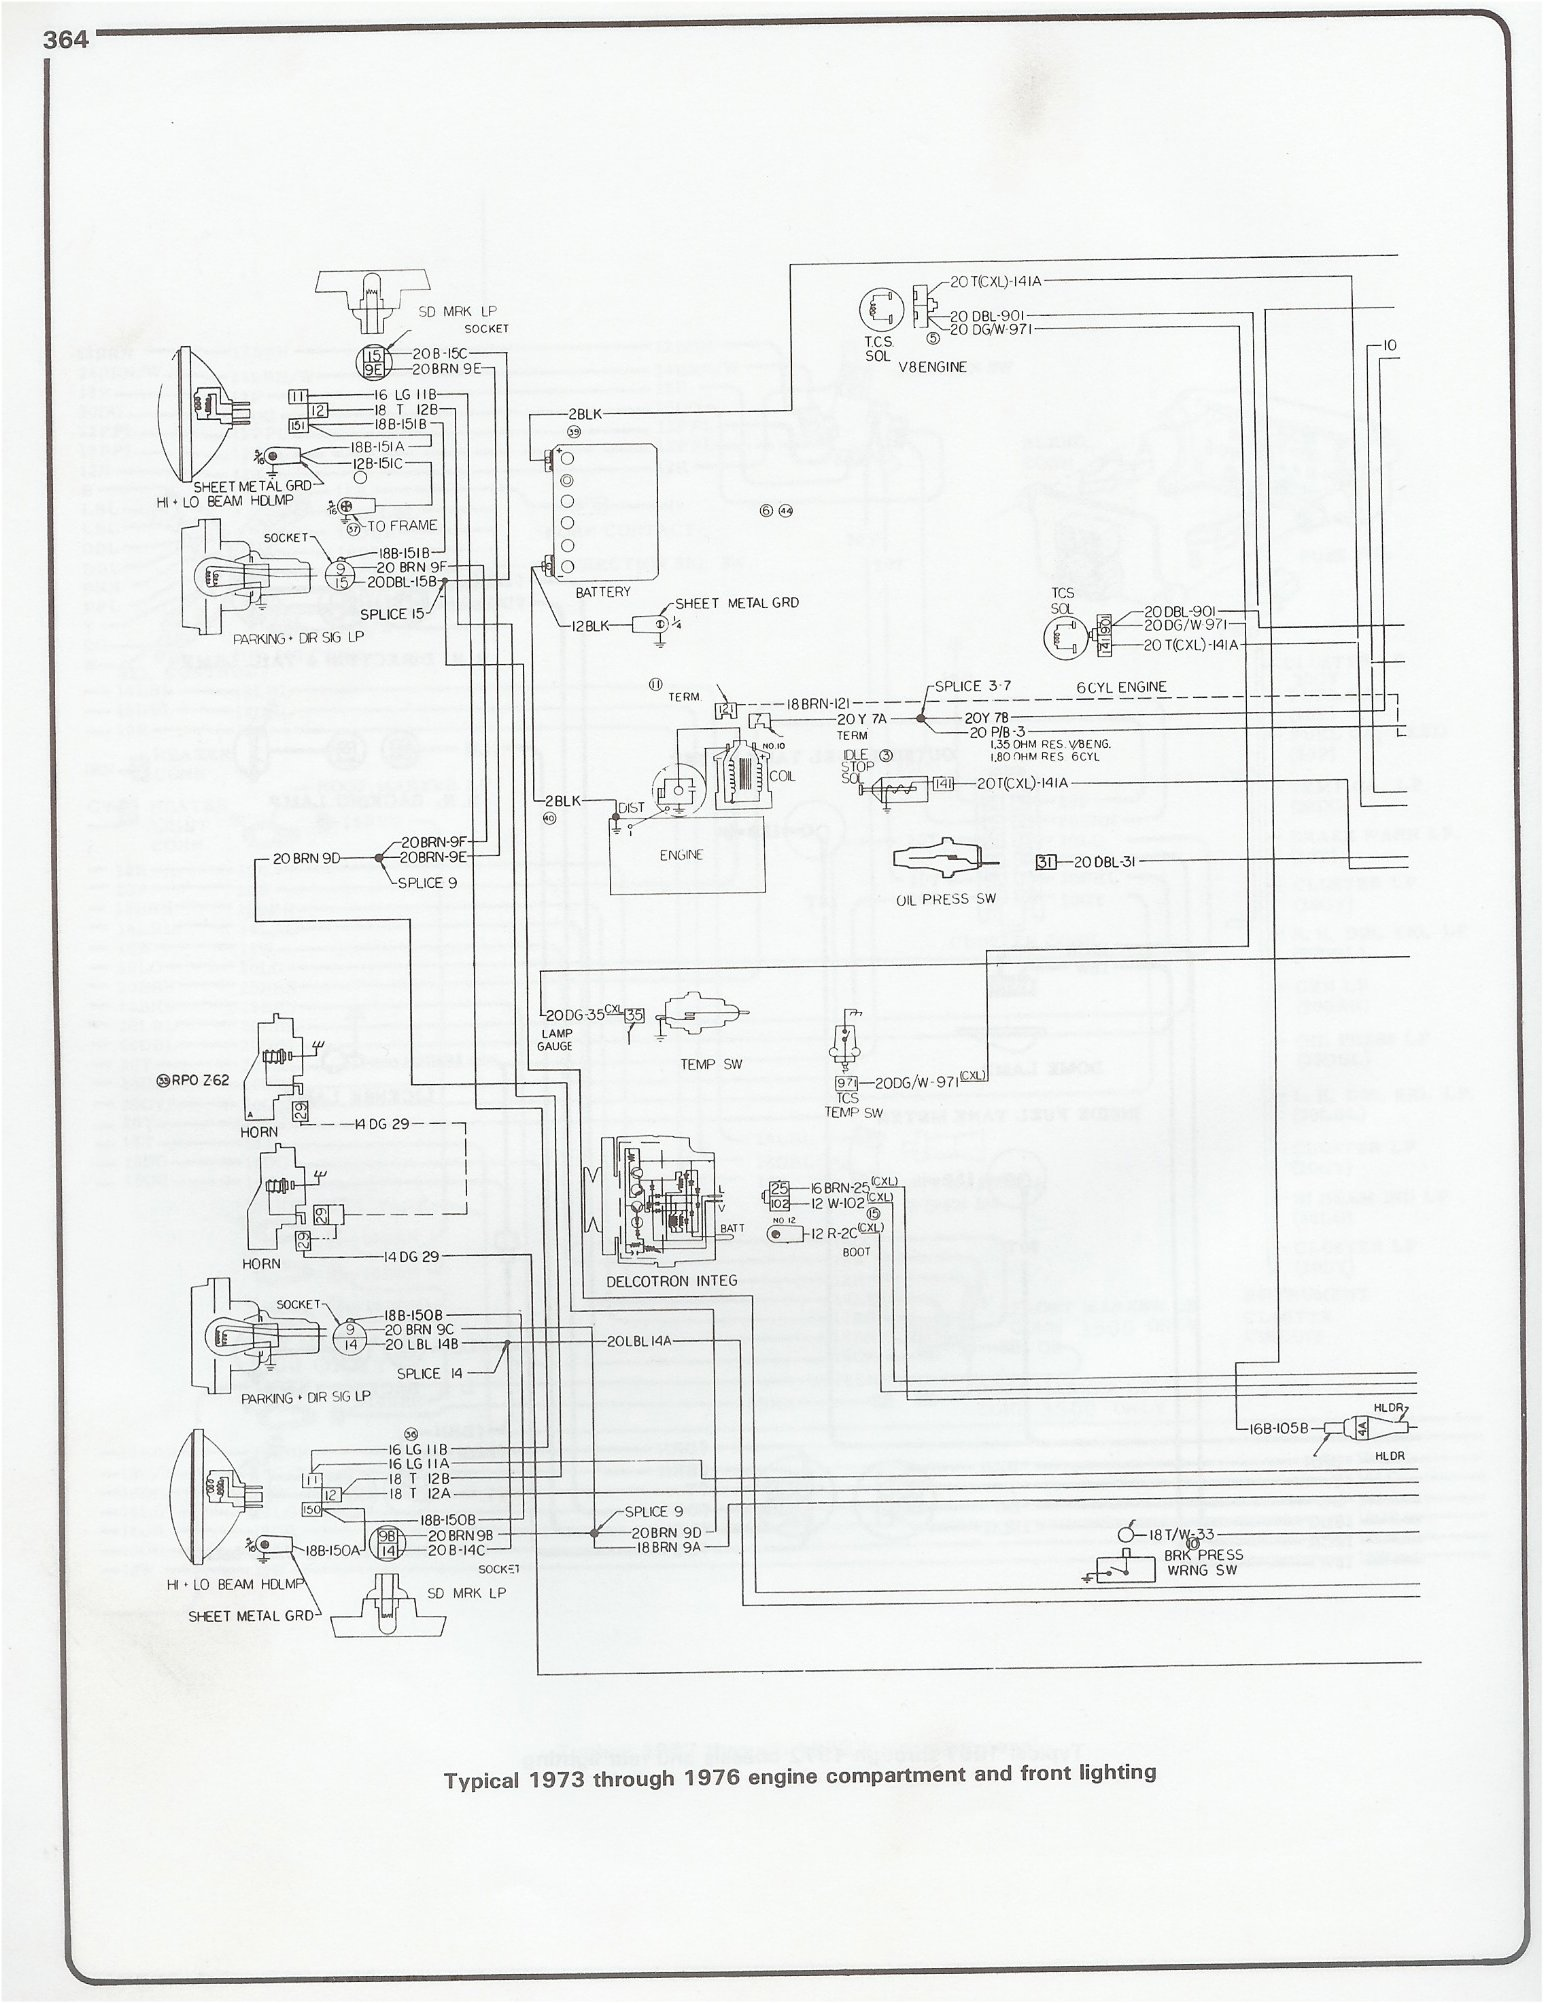 73 76_eng_frt_light complete 73 87 wiring diagrams